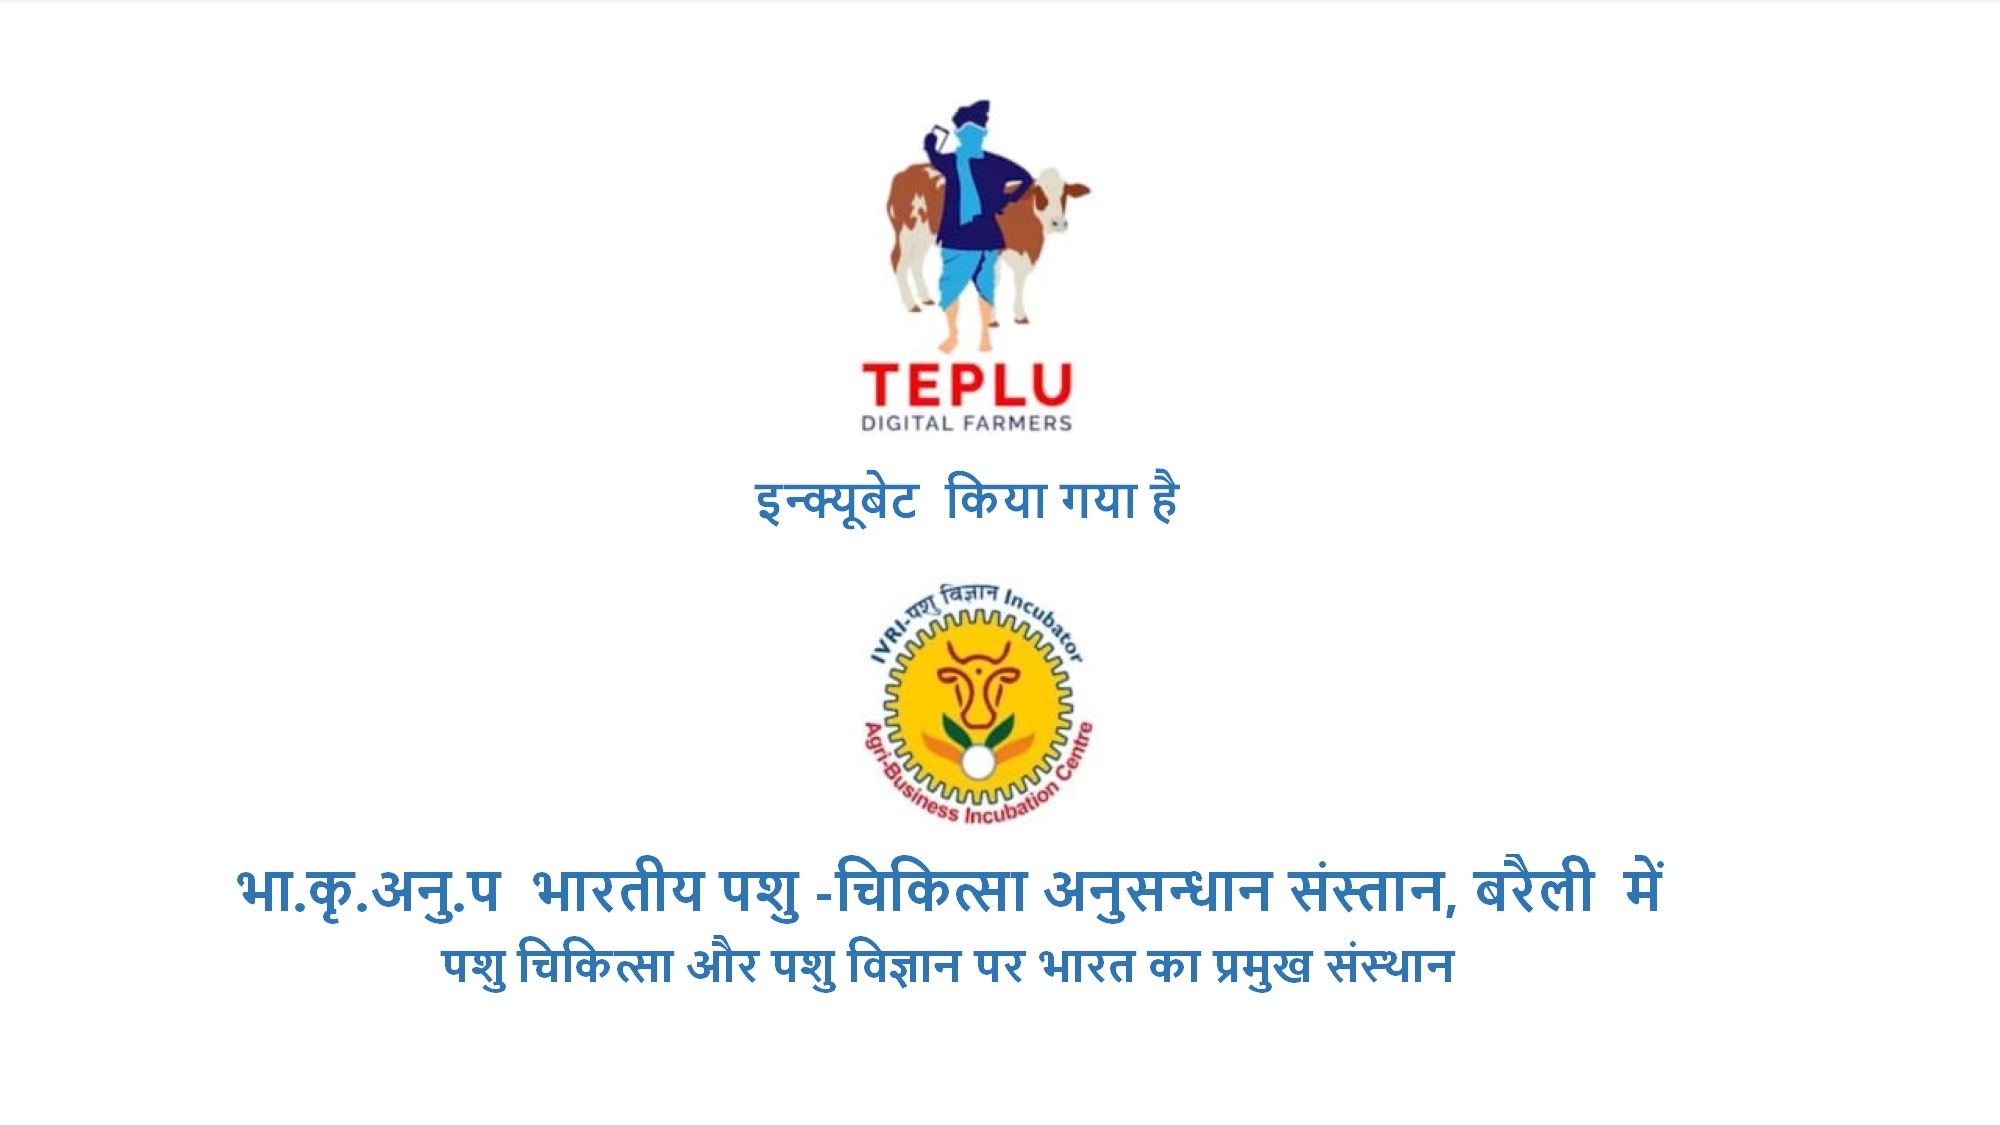 Learn from course on scientific dairy farming at Teplu. Increase profits in your dairy farm